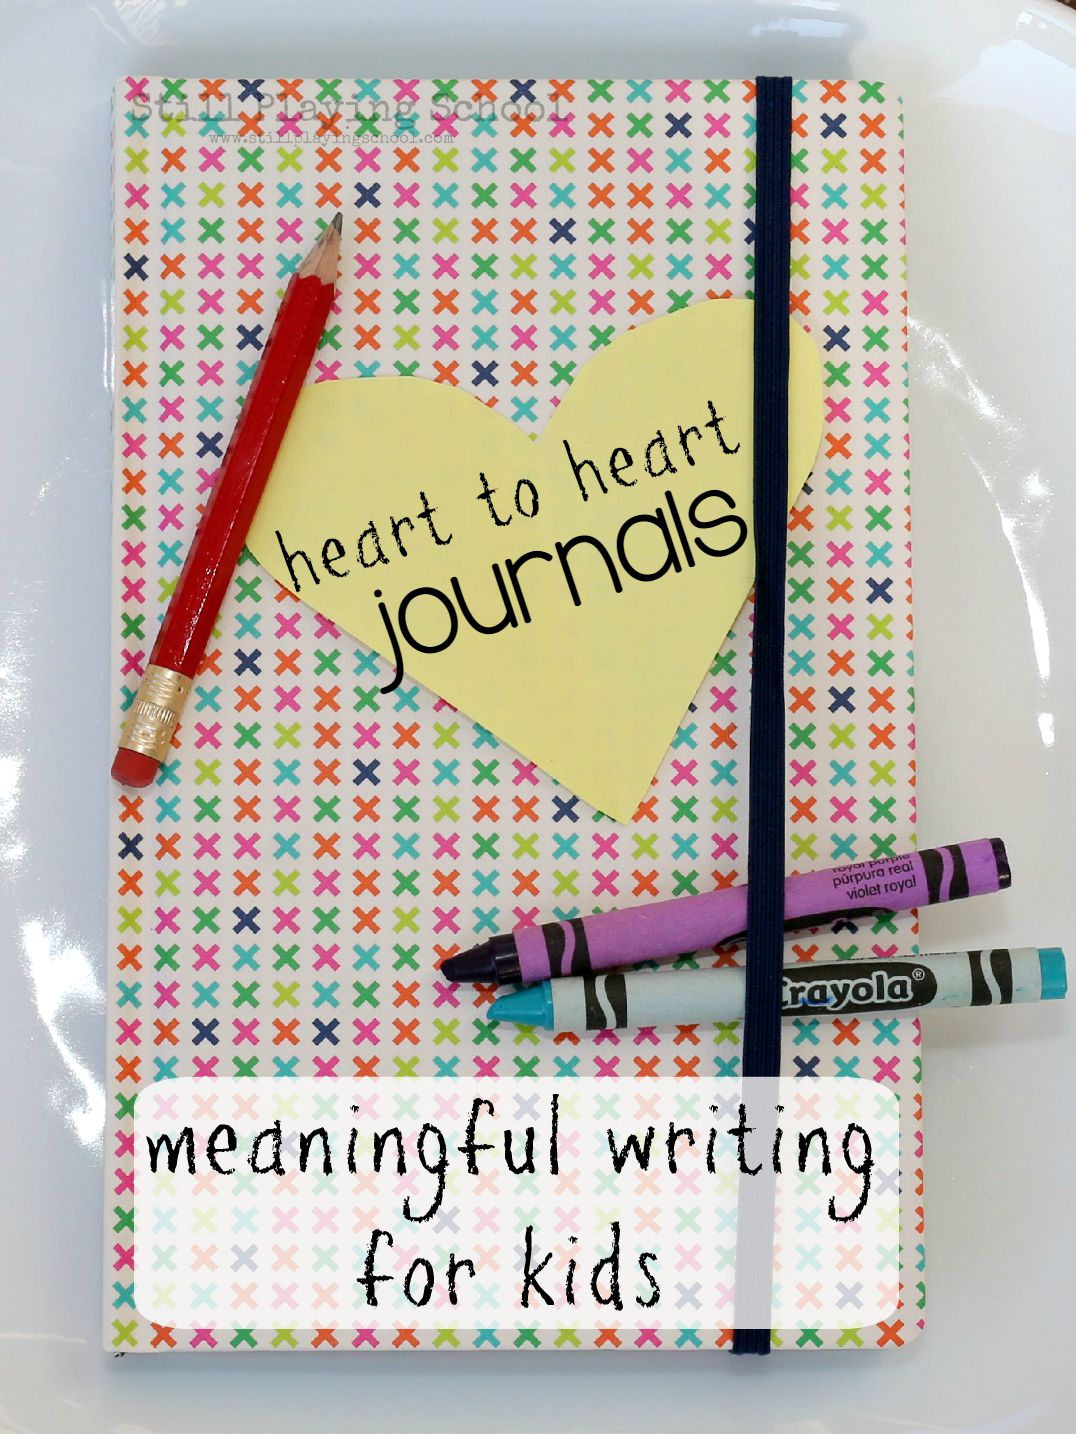 Heart To Heart Journals